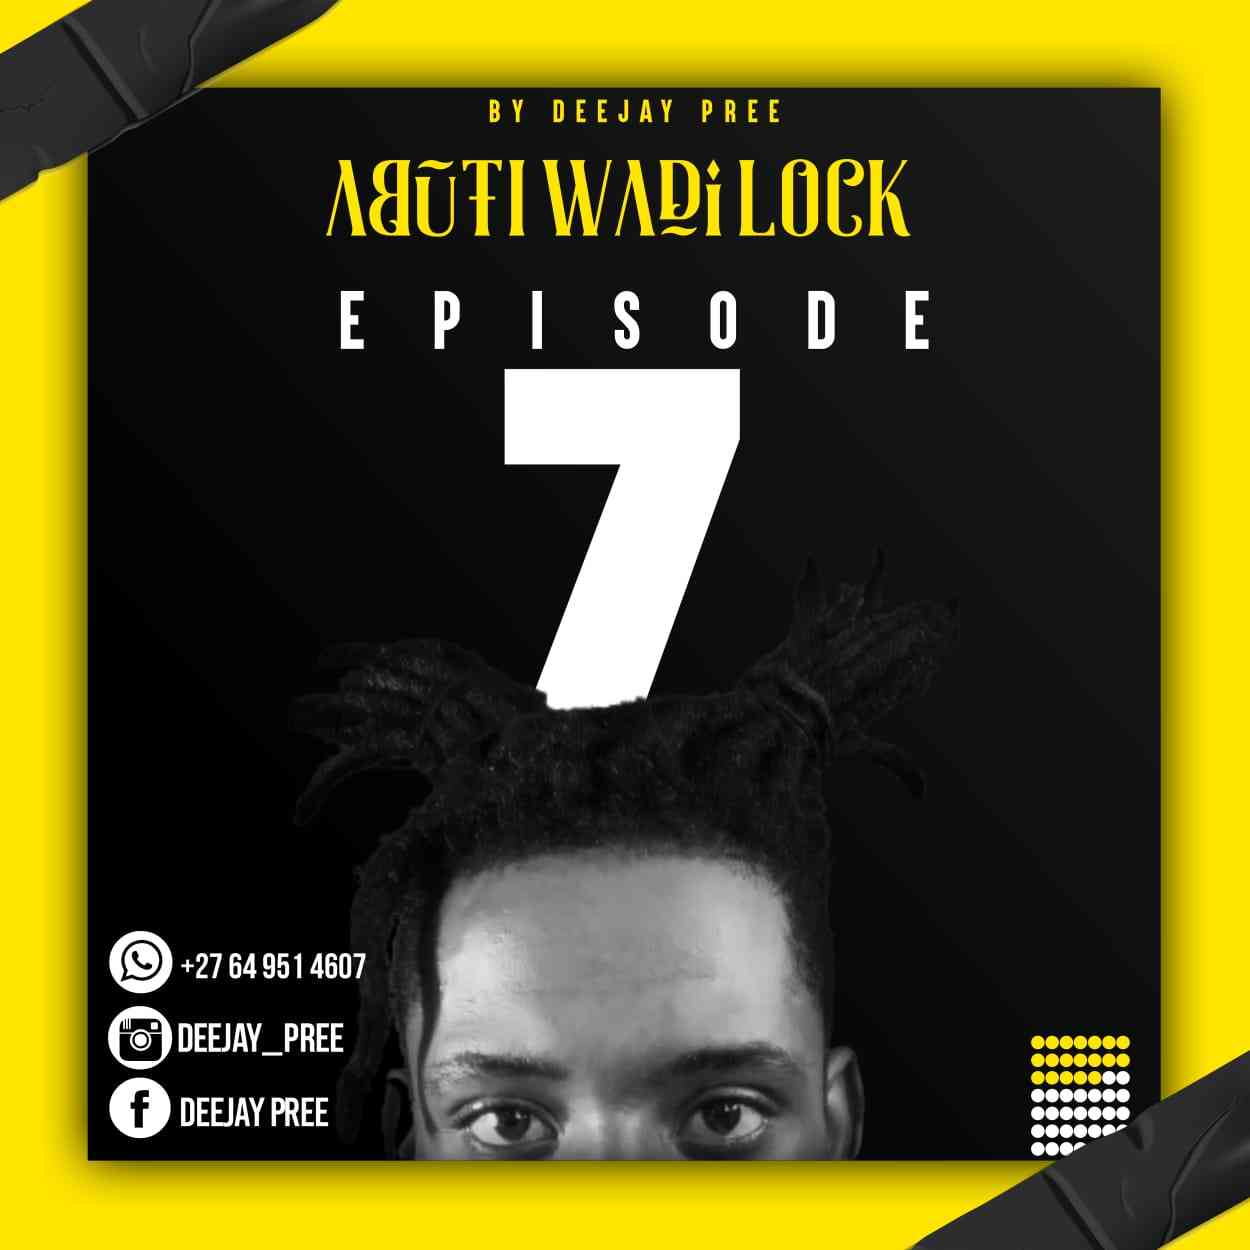 Deejay Pree Abuti Wadi Lock Episode 7 Mix